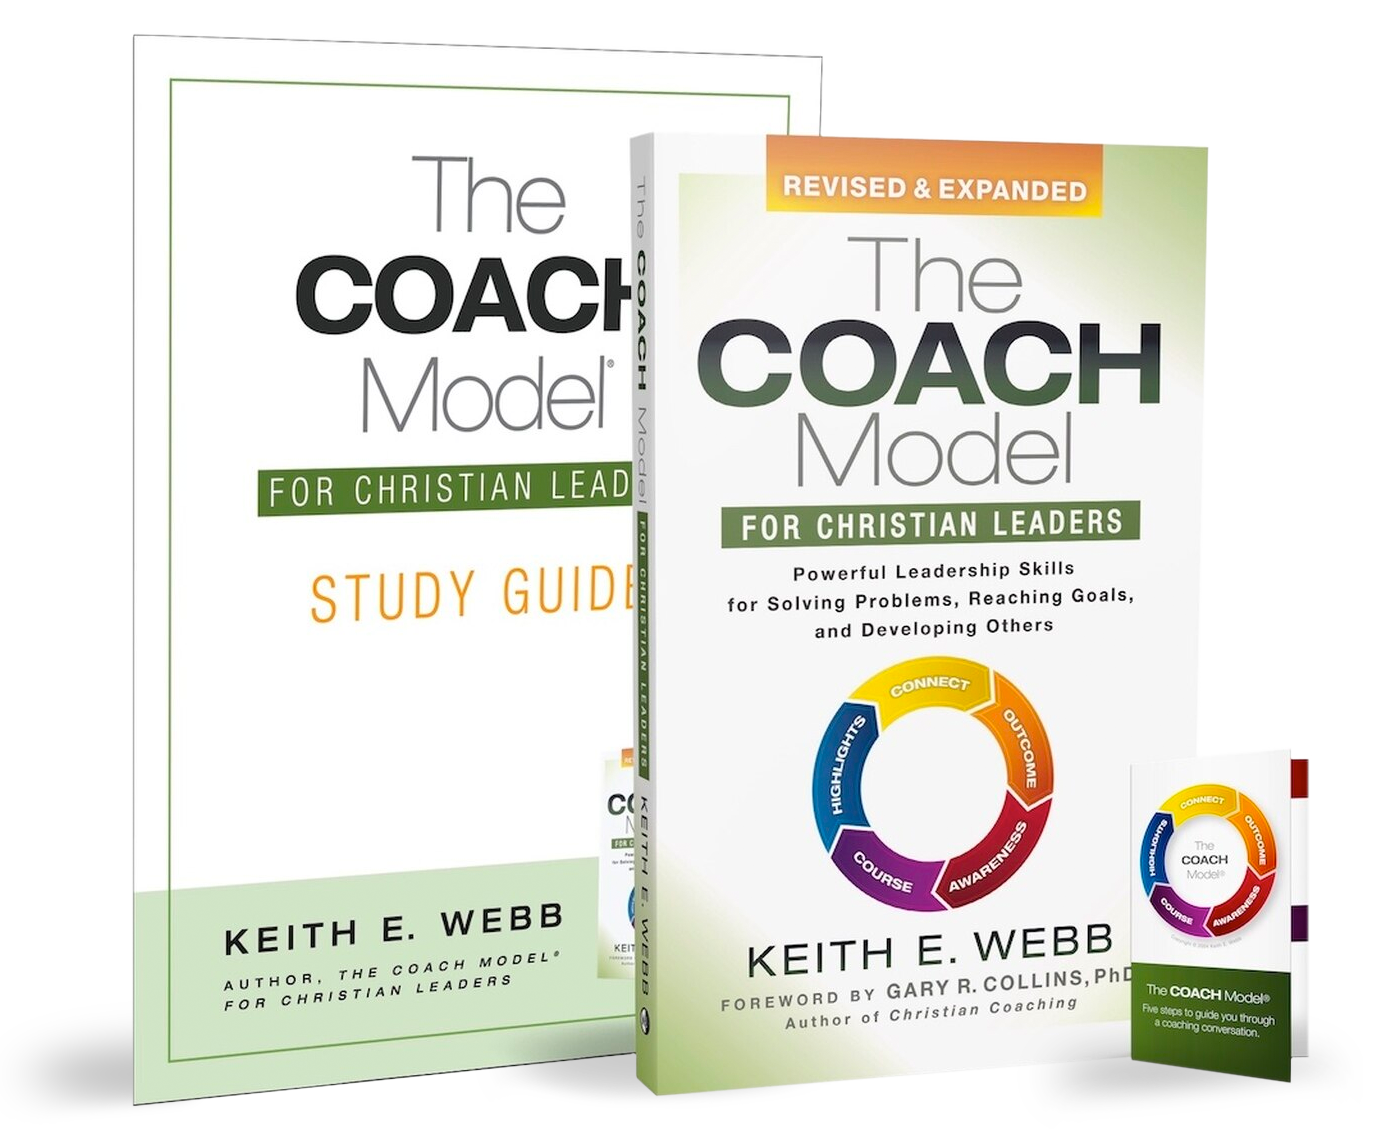 Keith-Webb---The-Coach-Model-Book-Order-with-Bonuses